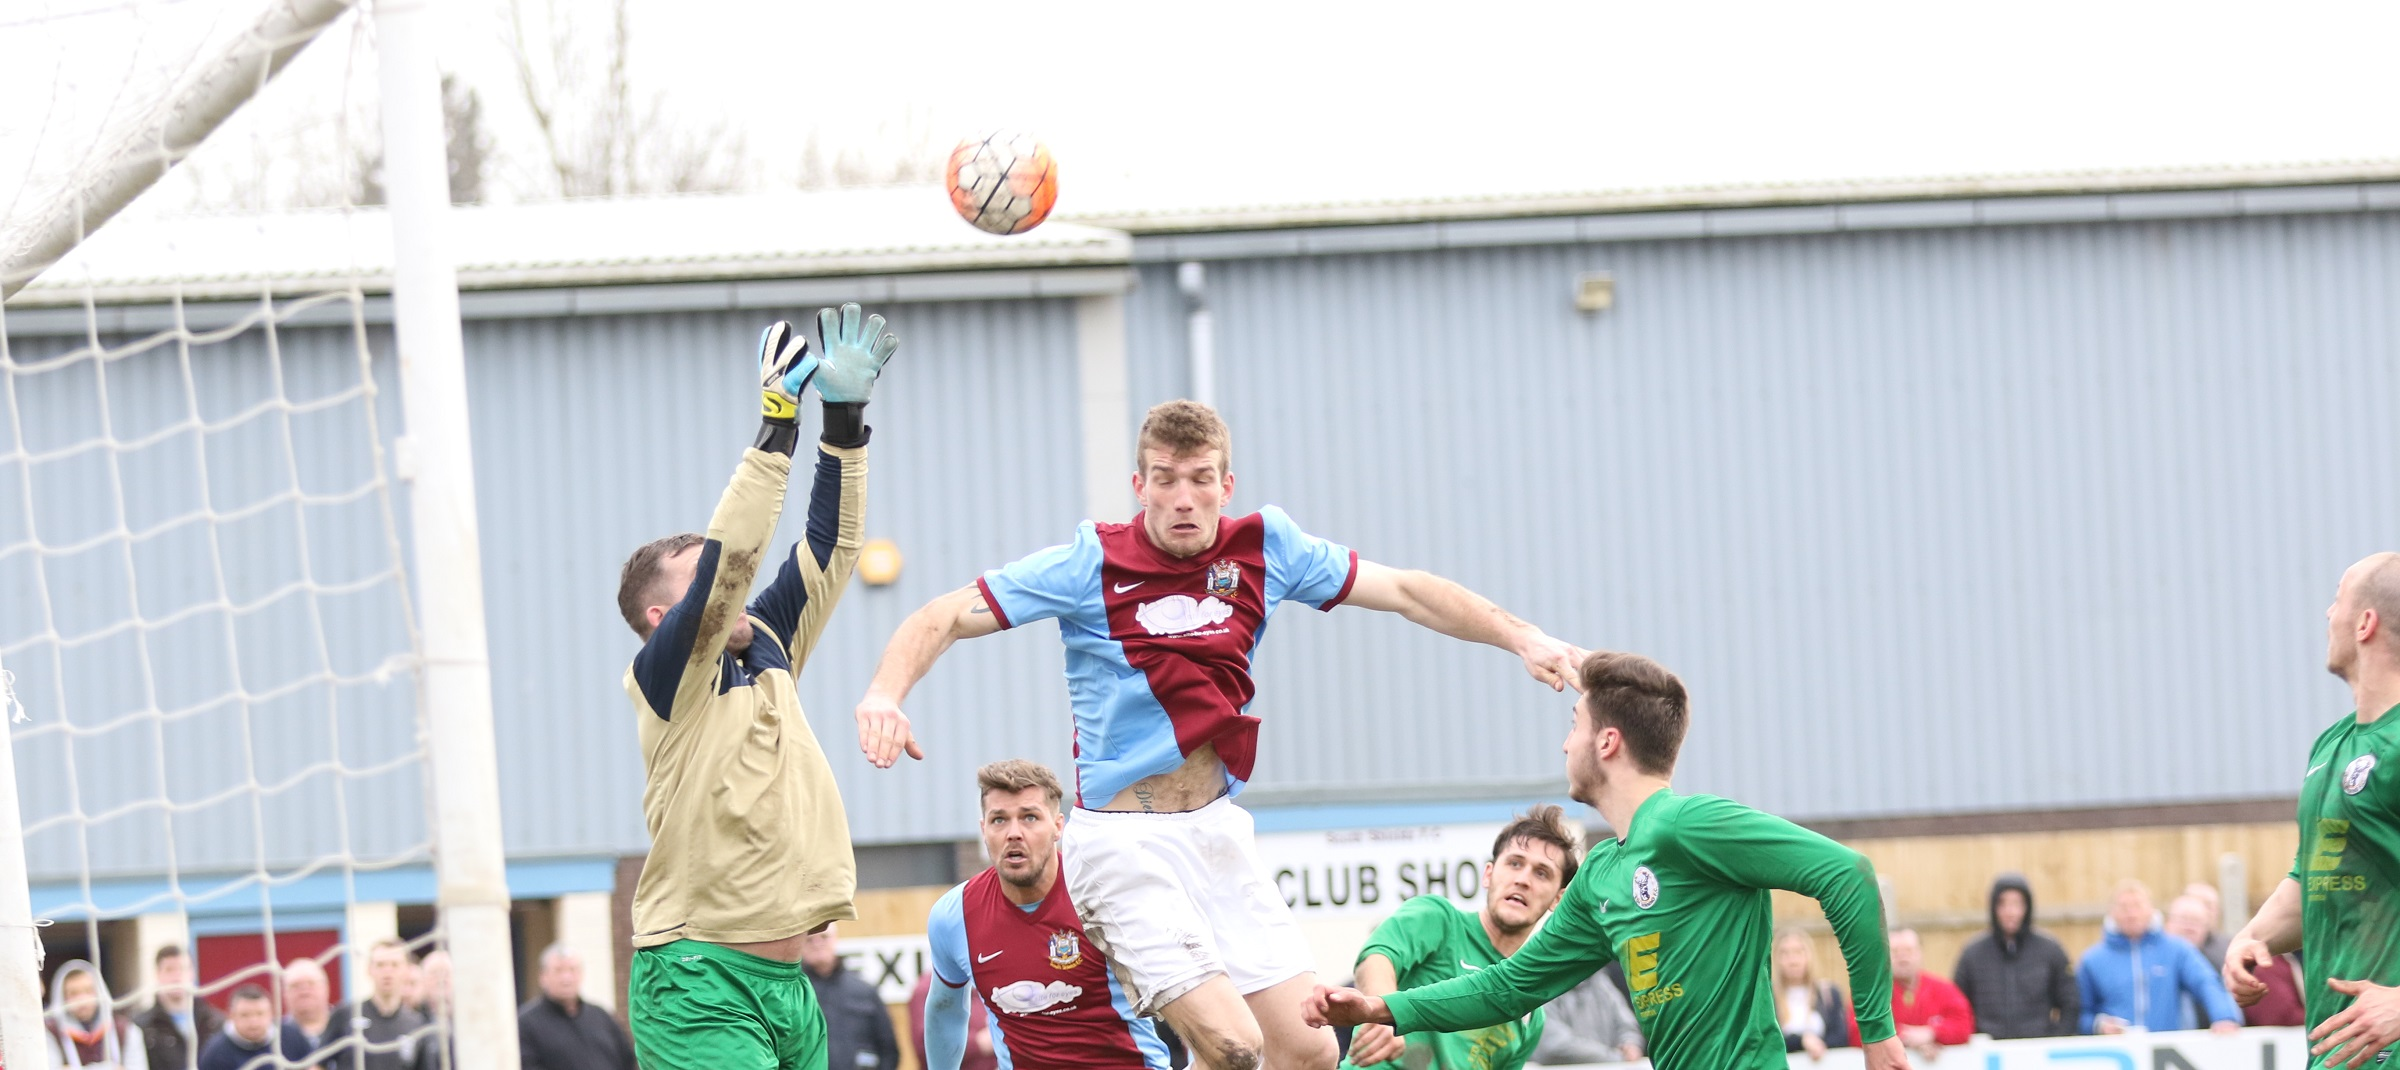 In Pictures: South Shields 4-2 Esh Winning